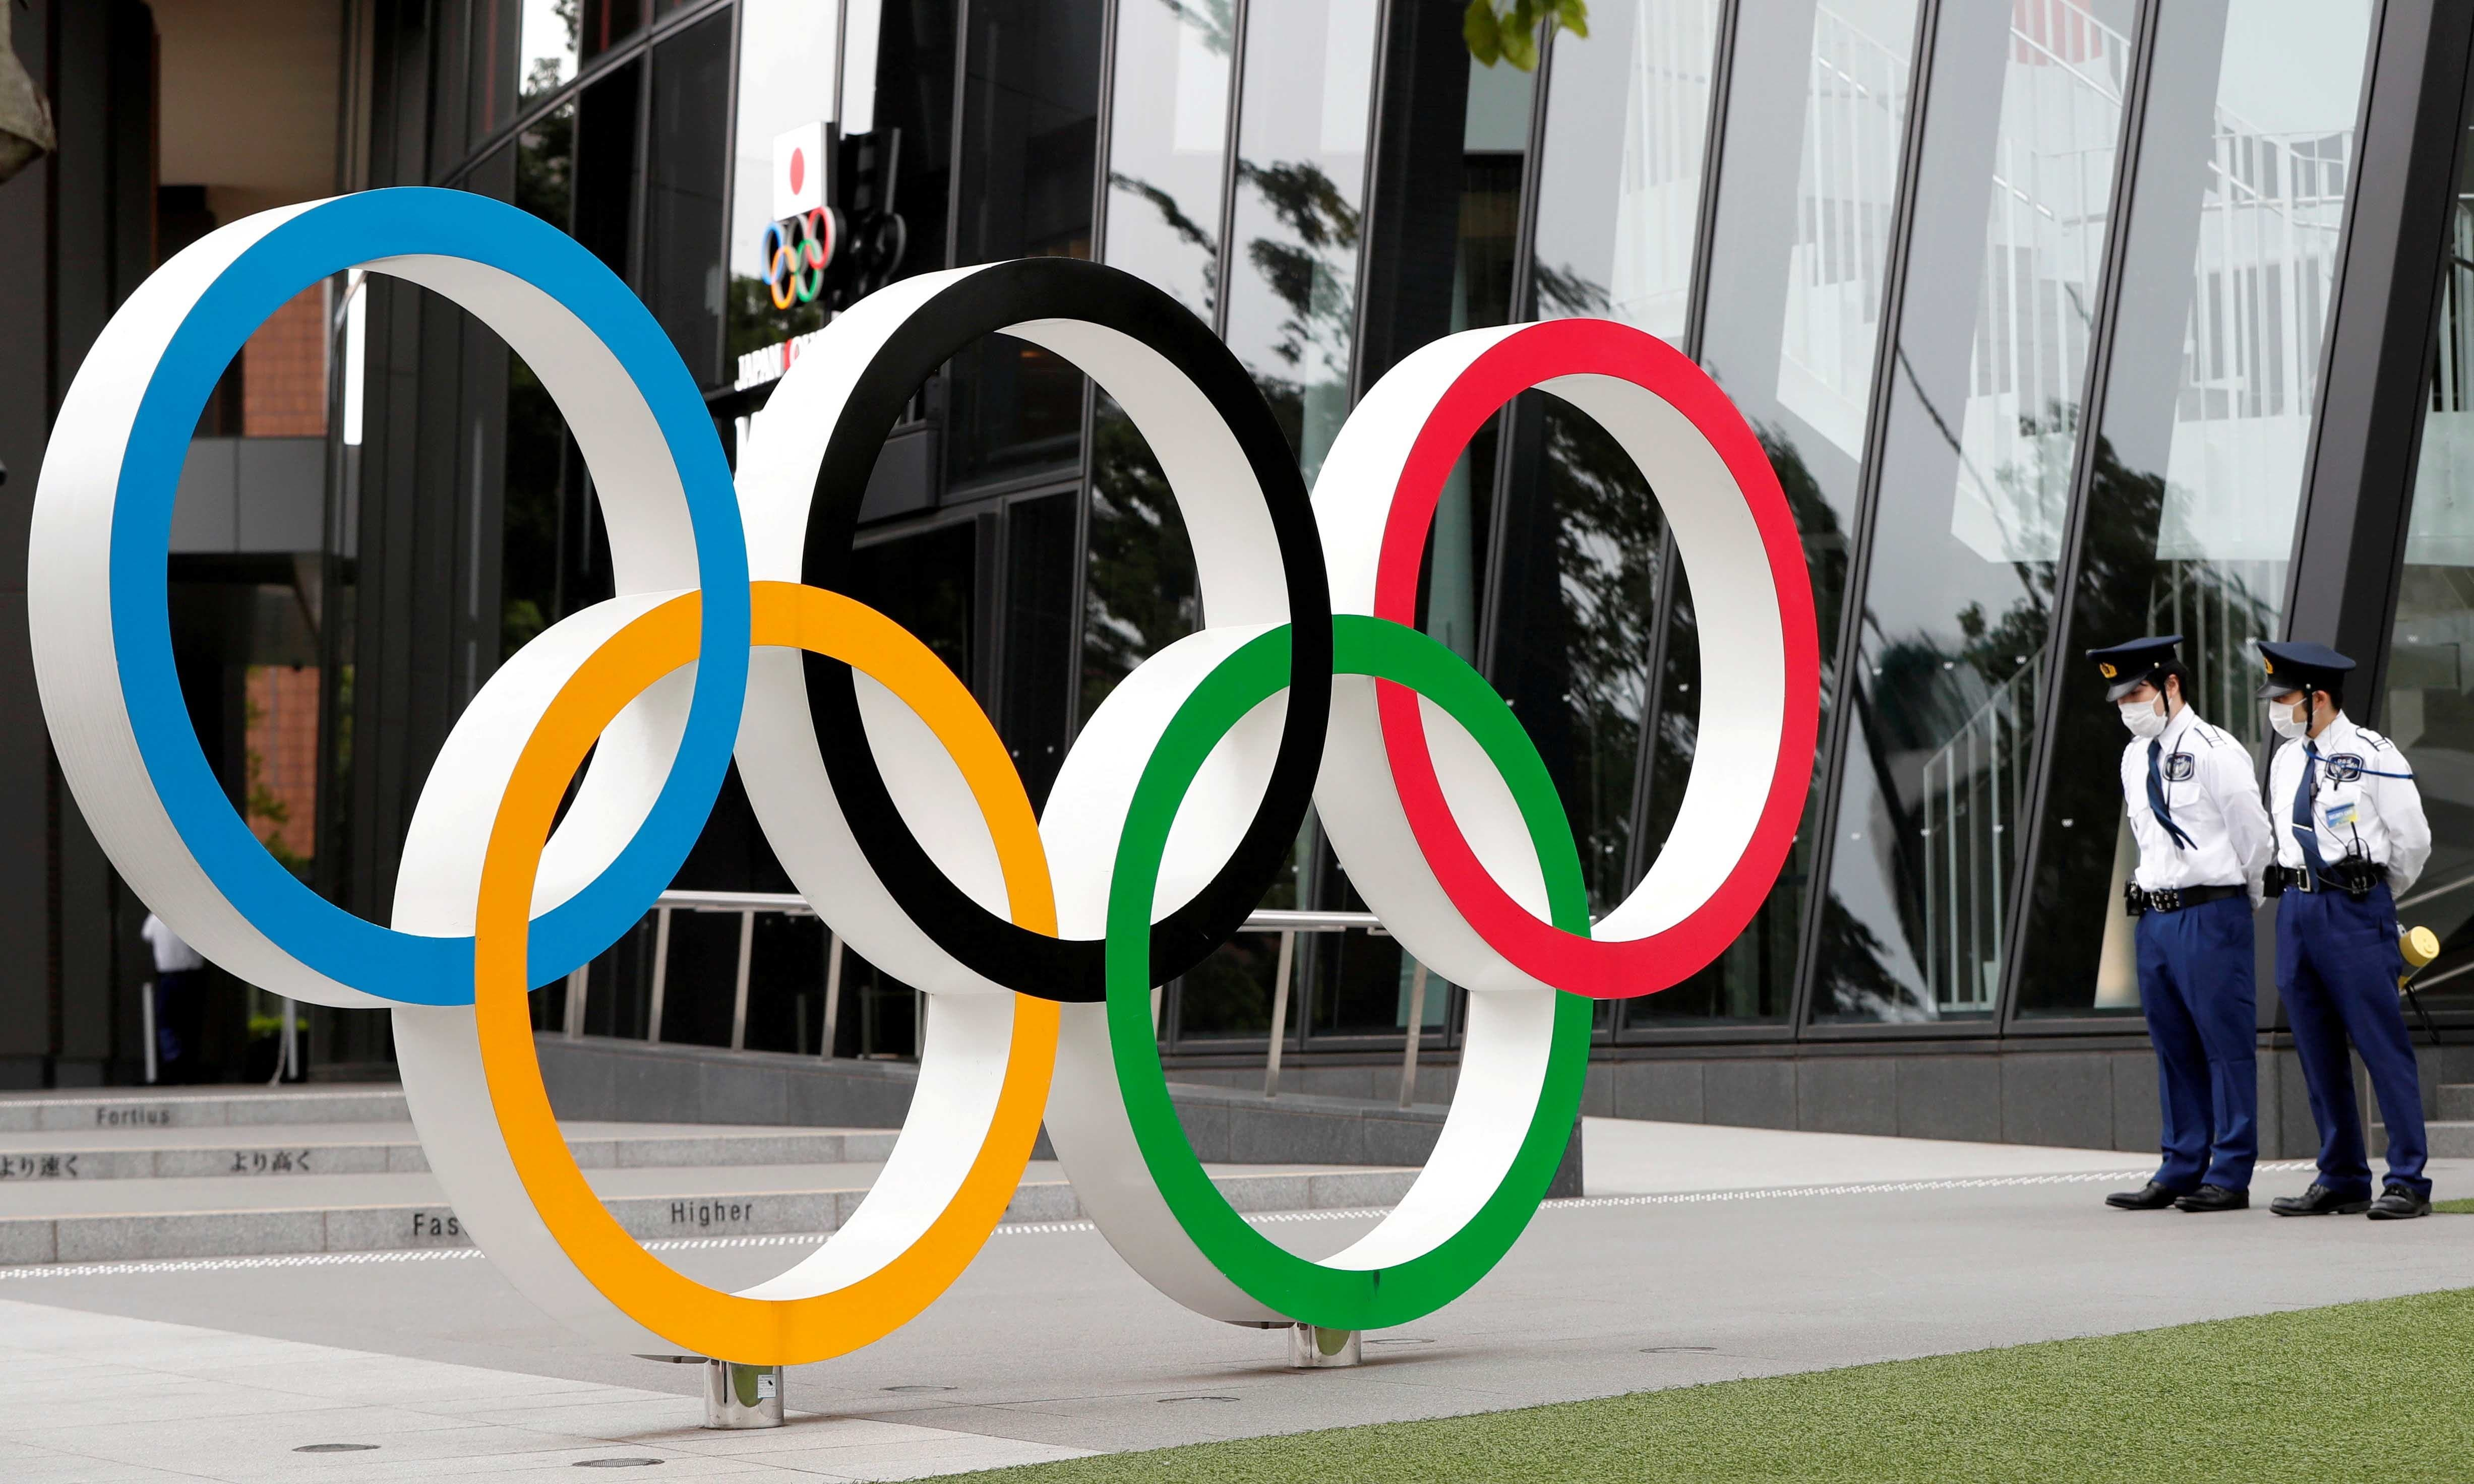 Security personnel stand guard near the Olympic rings monument on May 18. — Reuters